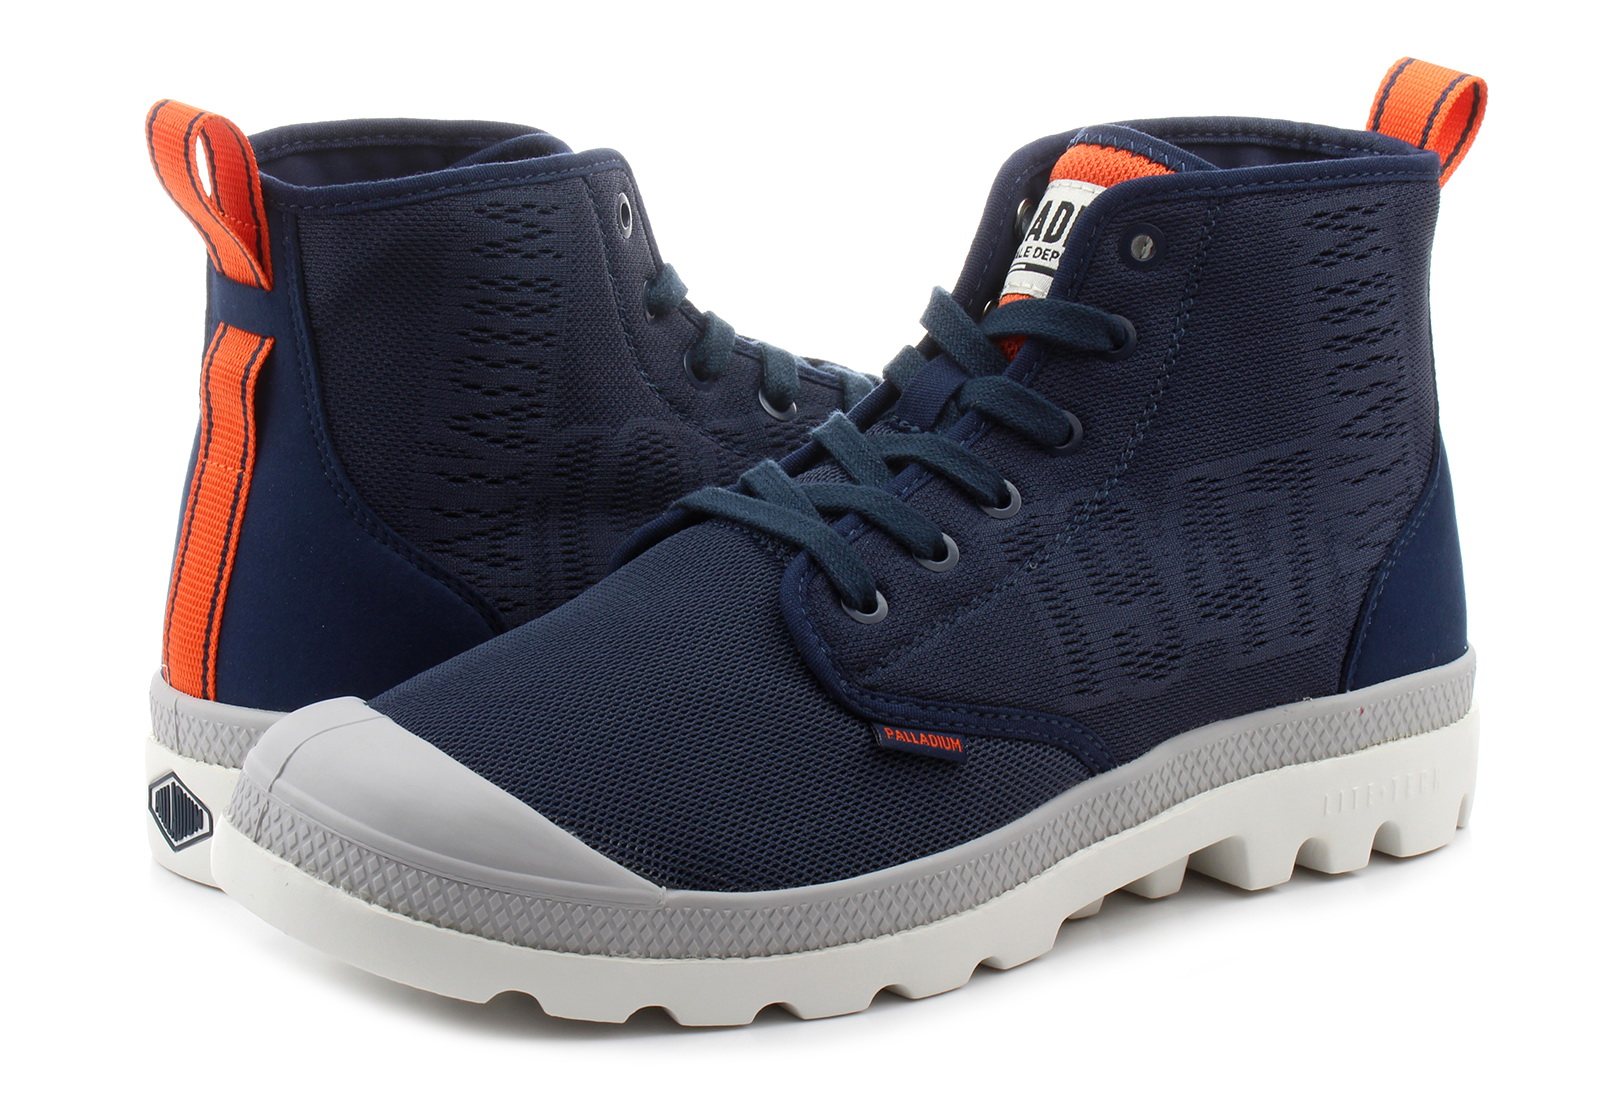 For Ultra Shoes Boots Web M SneakersAnd Pampa Shop Palladium 76264 458 Online Lite X0OPkN8nw